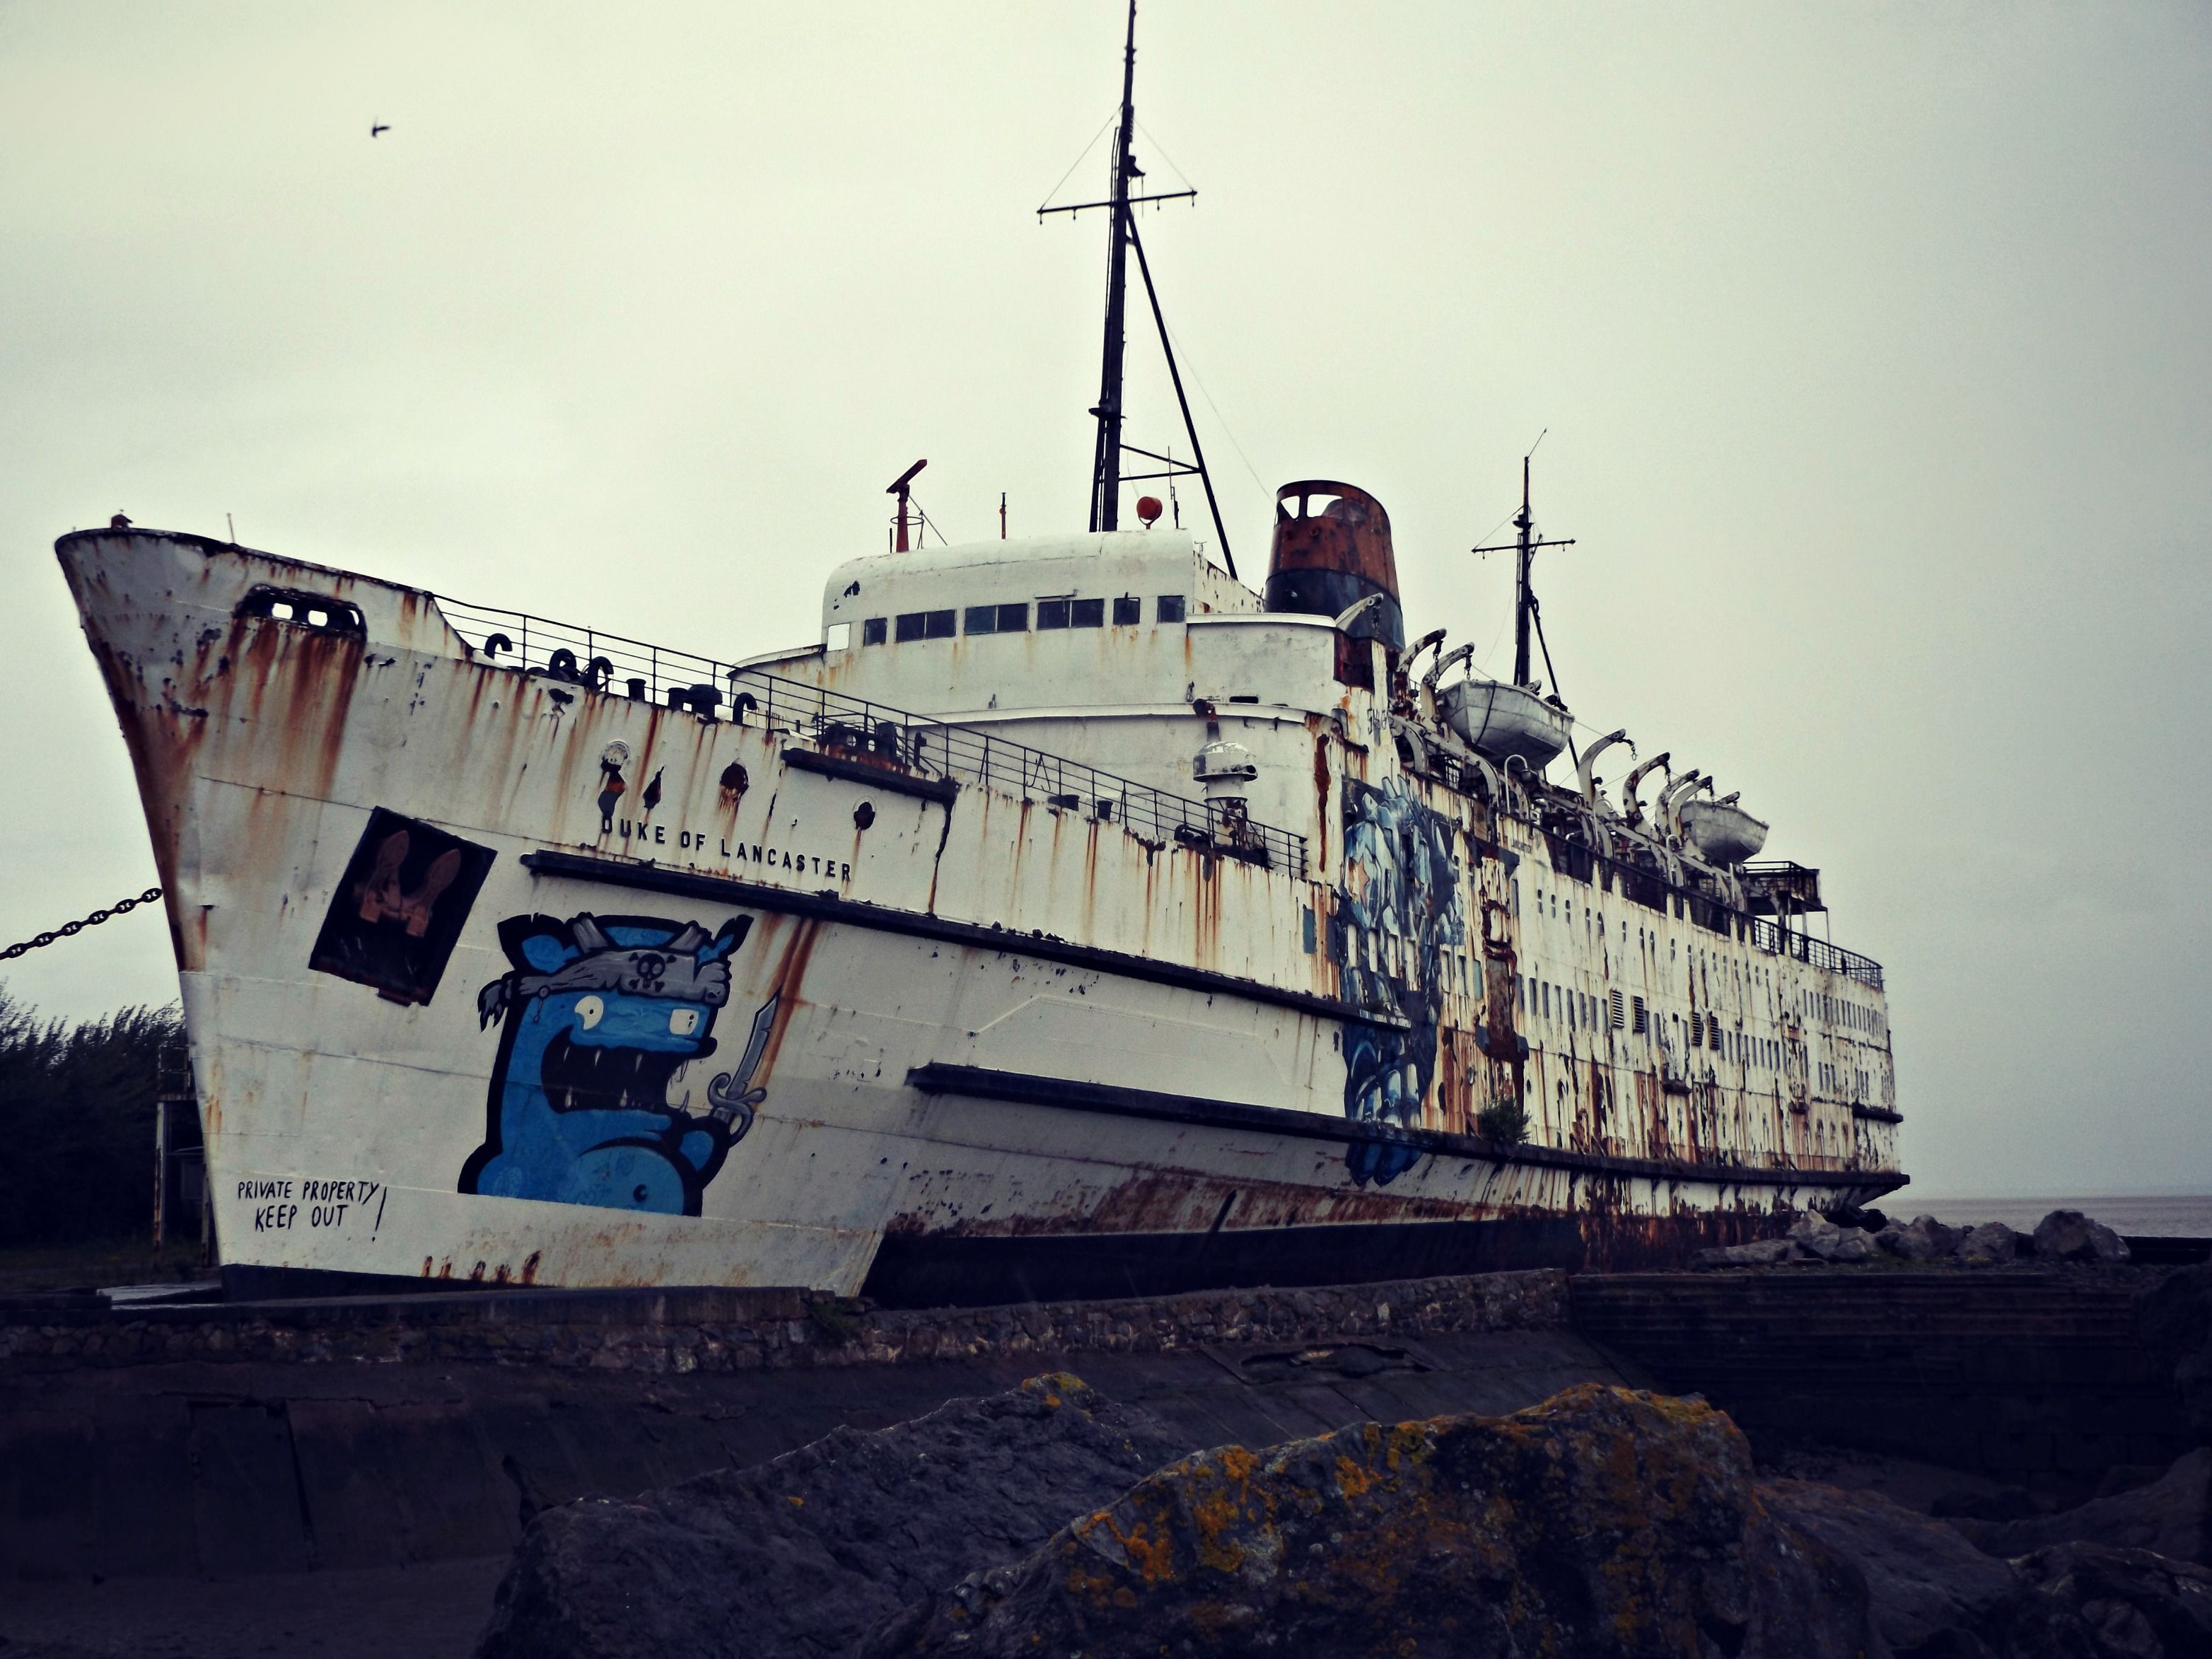 The Duke of Lancaster, North Wales